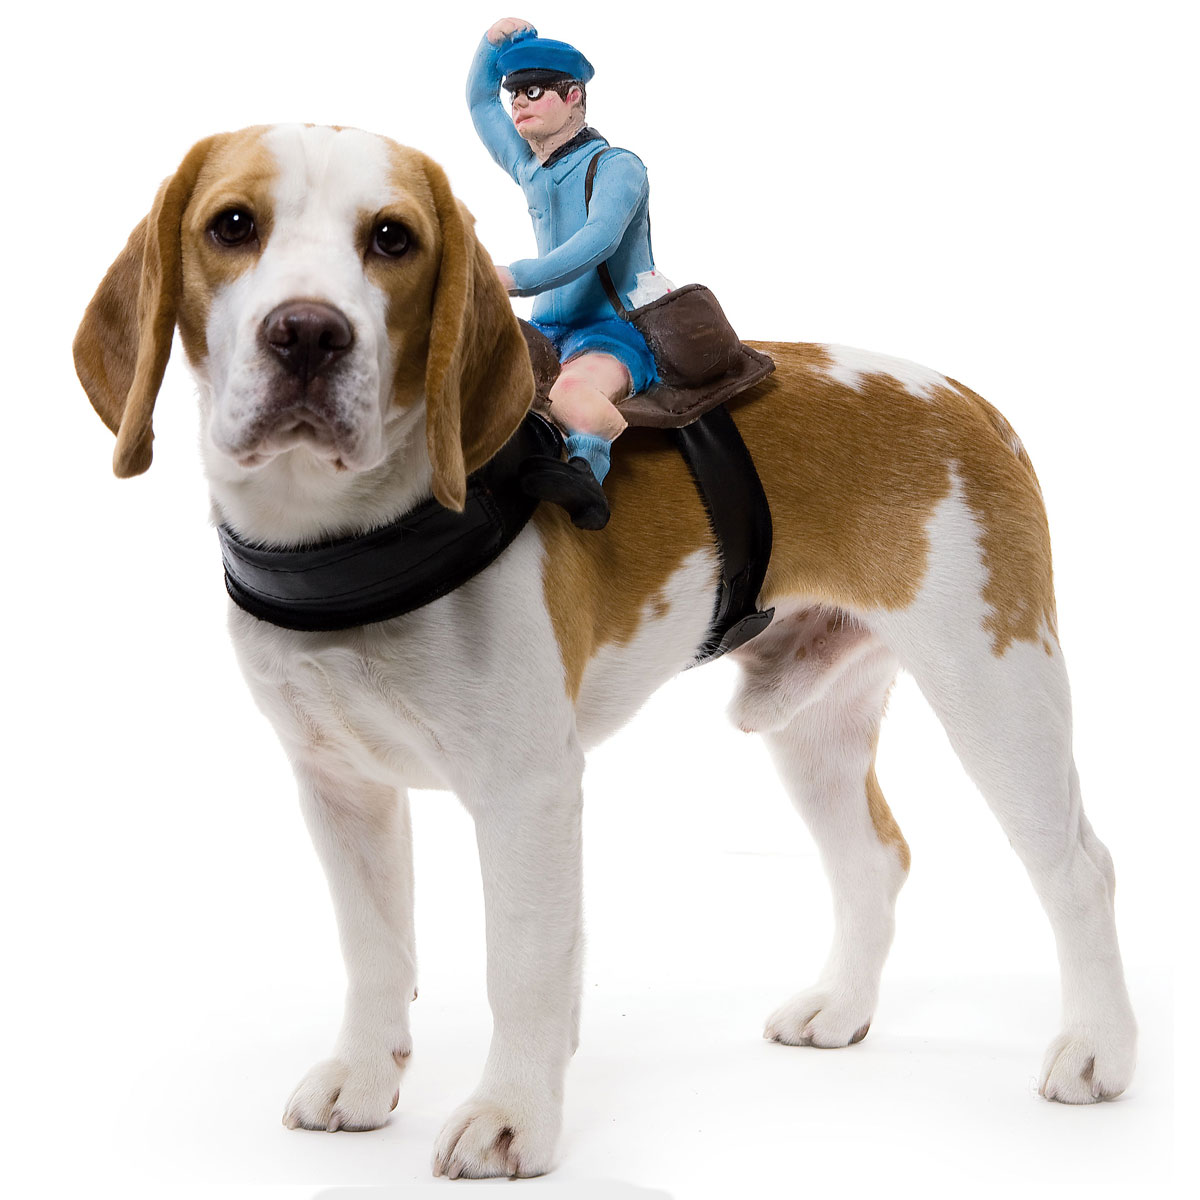 Dog Riders Pet Costumes  sc 1 st  The Green Head & Dog Riders Pet Costumes - The Green Head